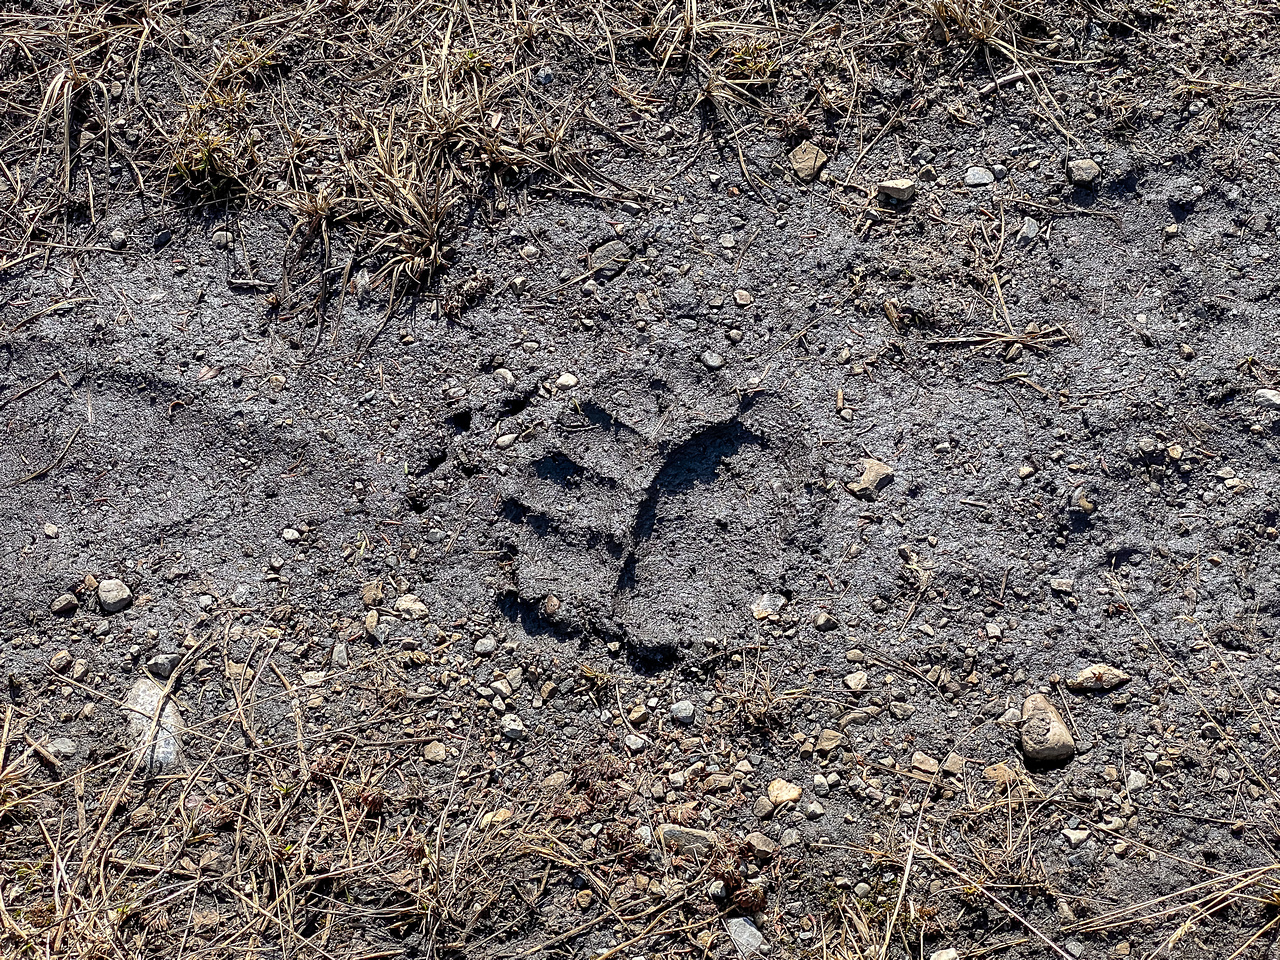 Lots of bear tracks of varying sizes up the Scalp Creek Trail.